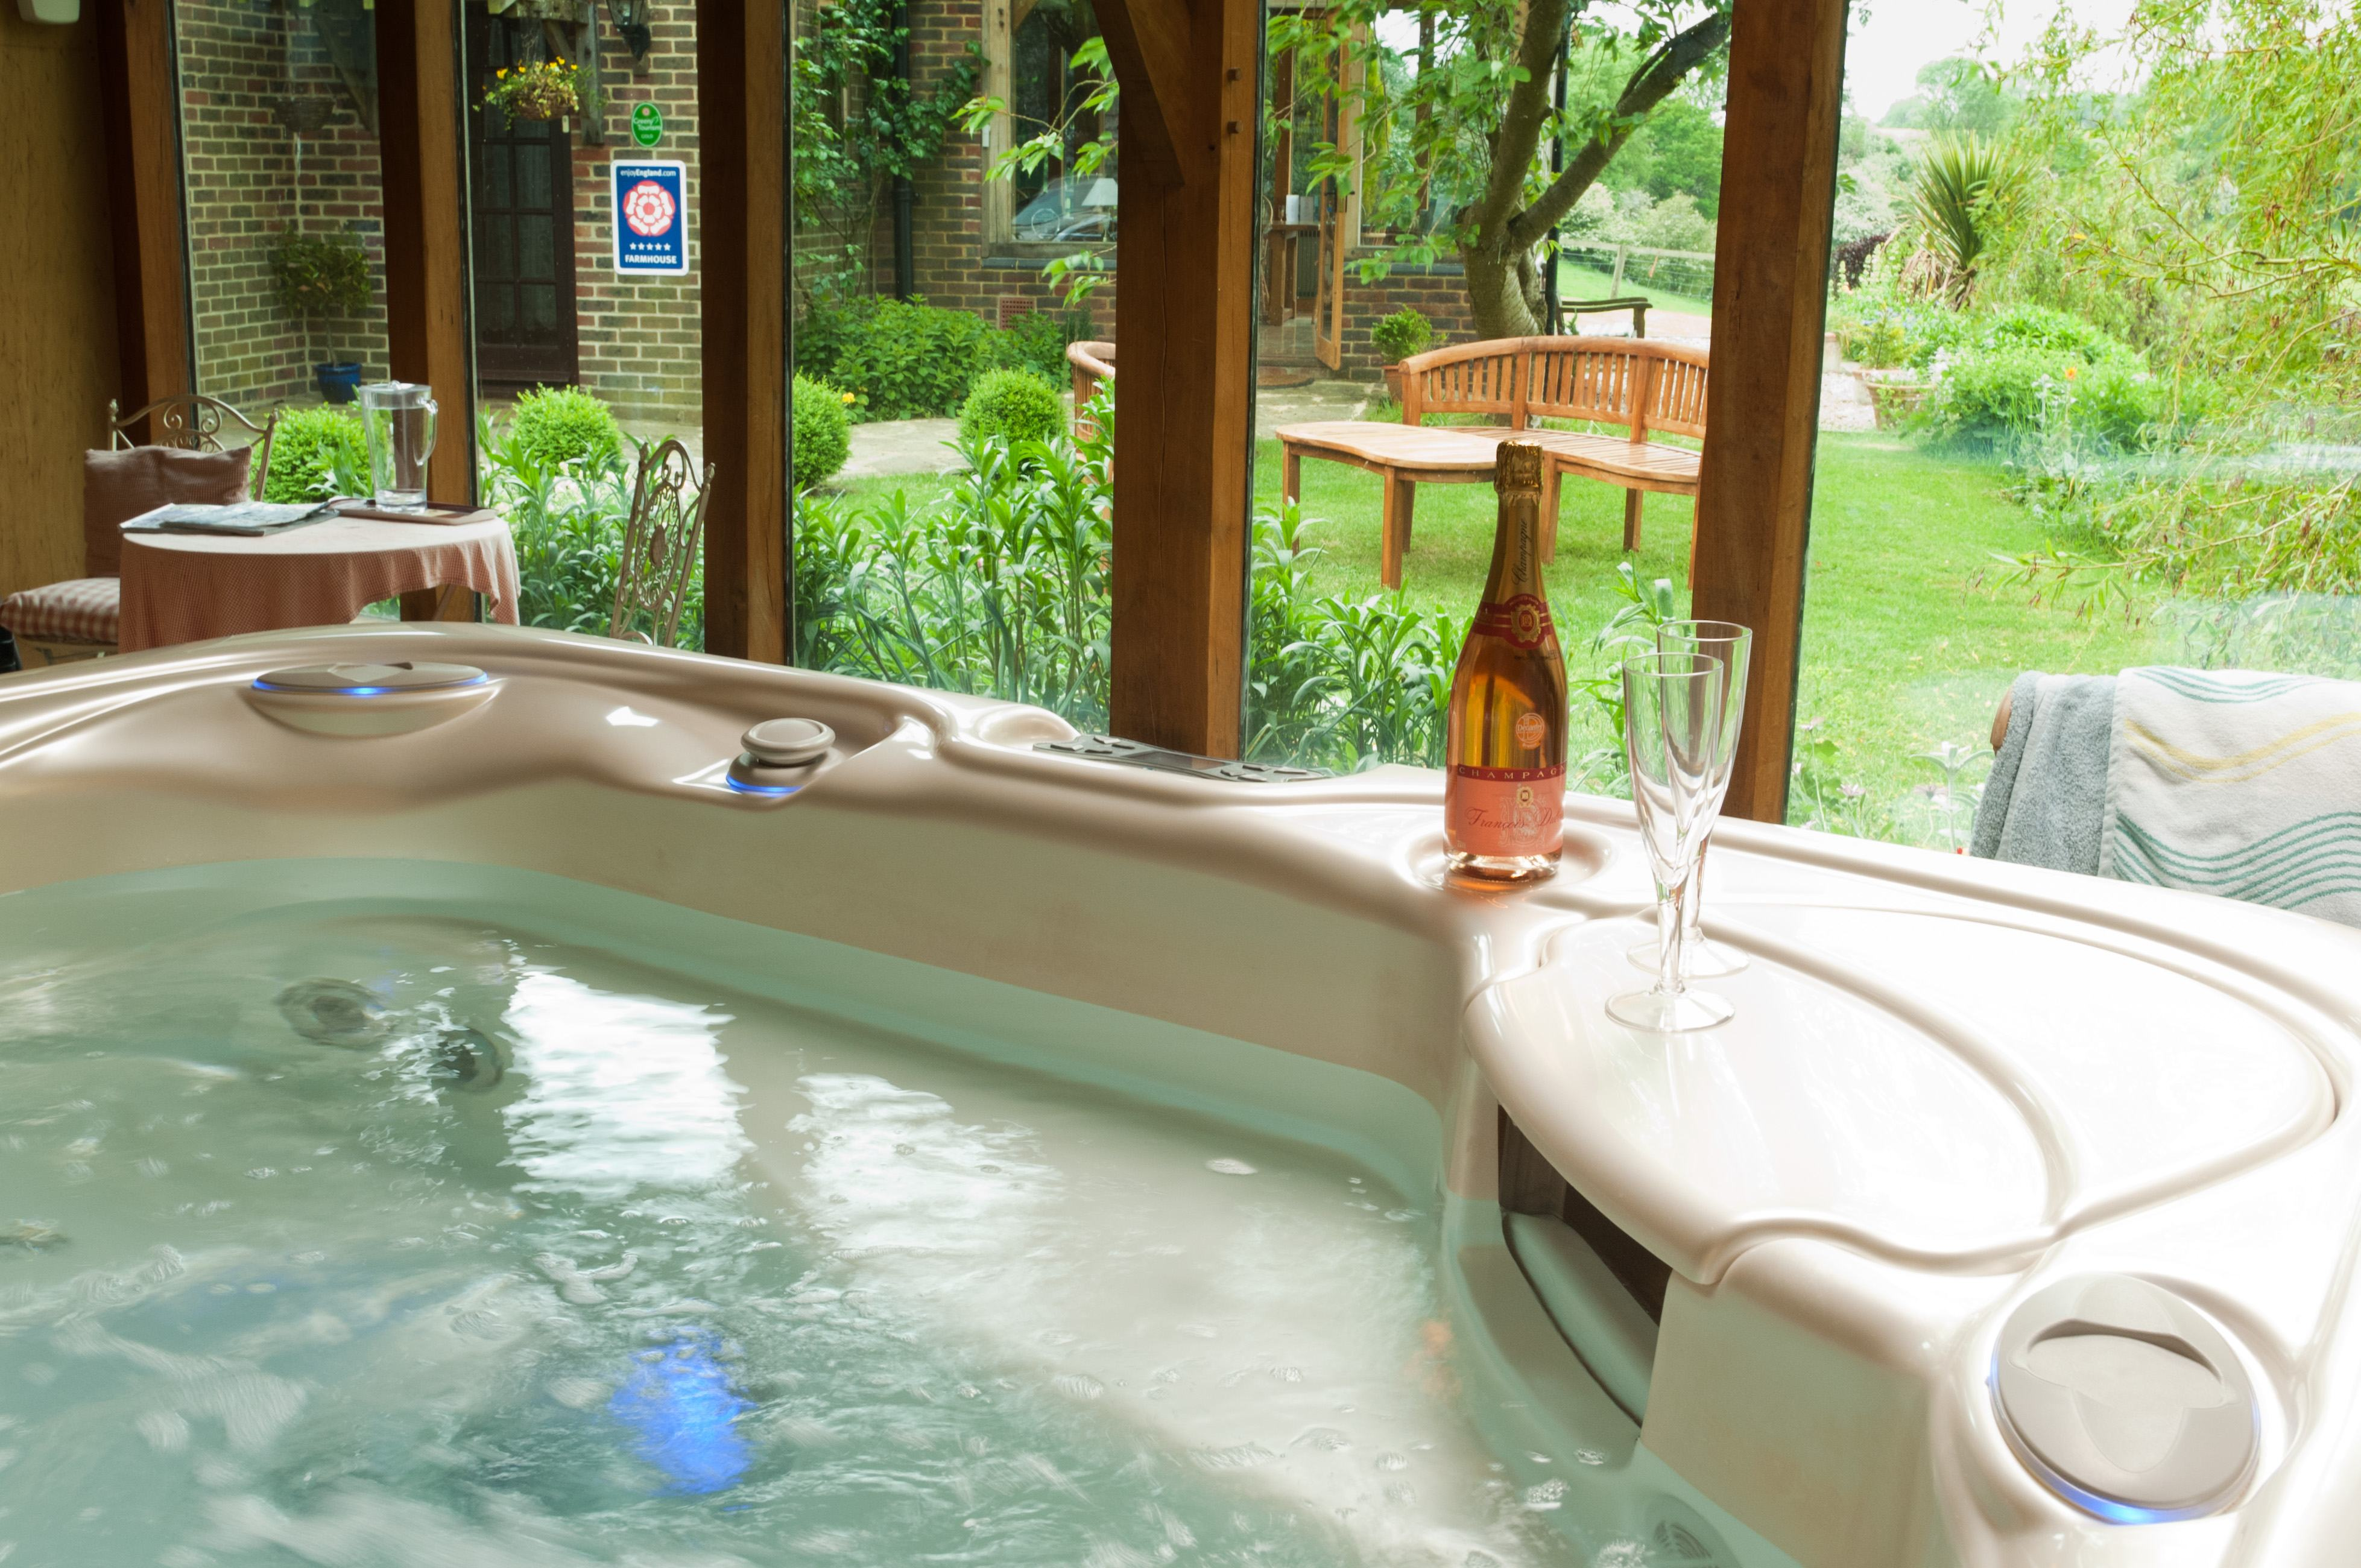 Hot tub with garden views | Alkham Court Farmhouse Bed and Breakfast